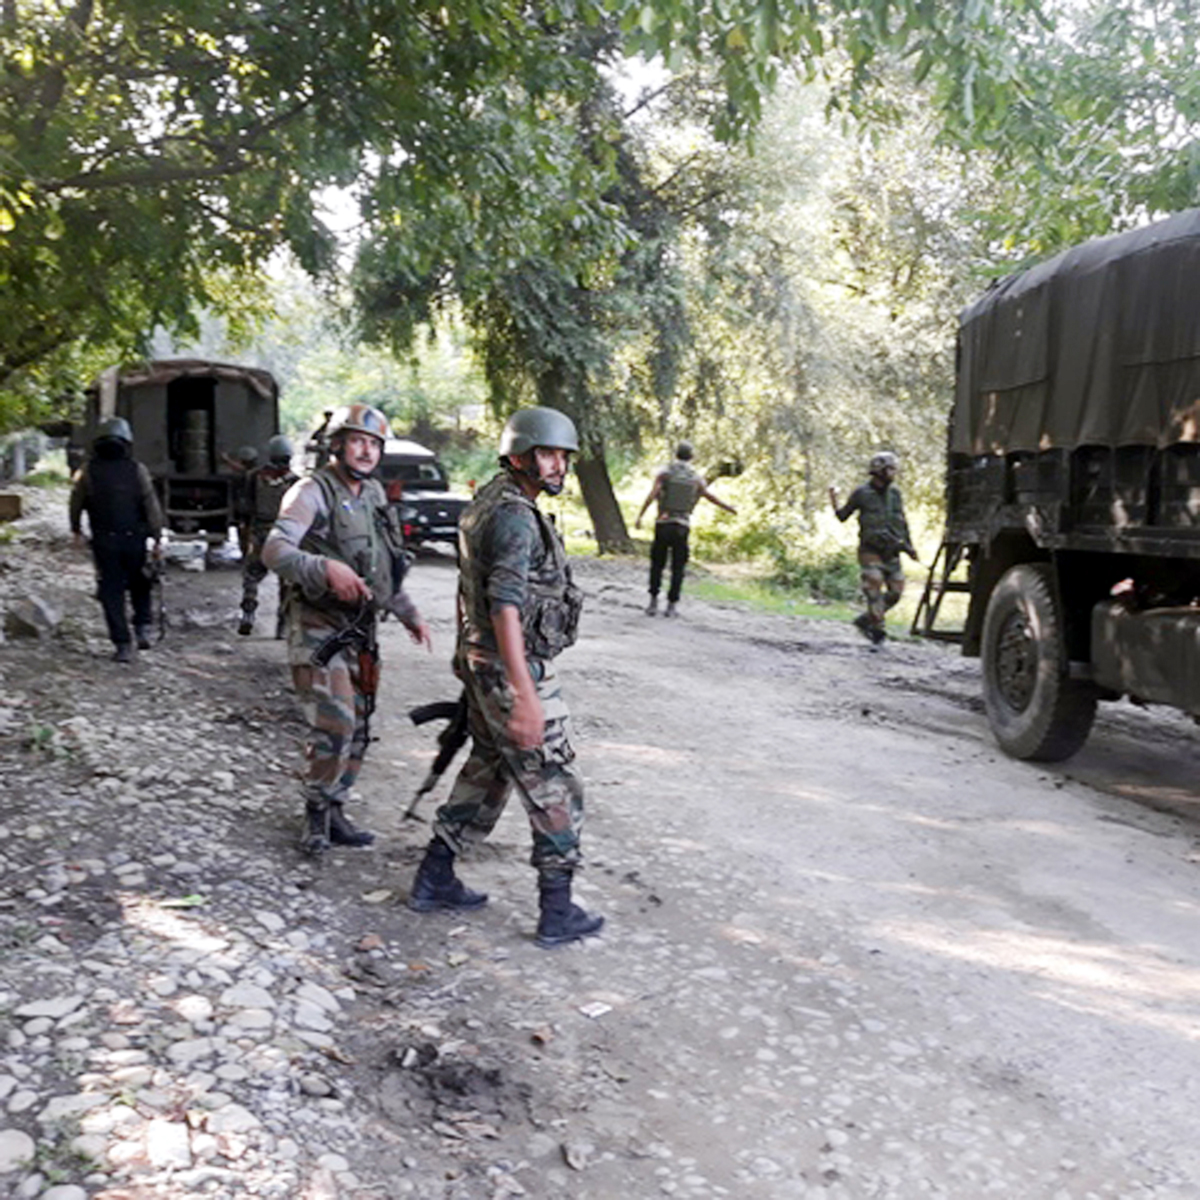 Troops at the site of encounter at Bijbehara, Anantnag on Tuesday. -Excelsior/Sajjad Dar